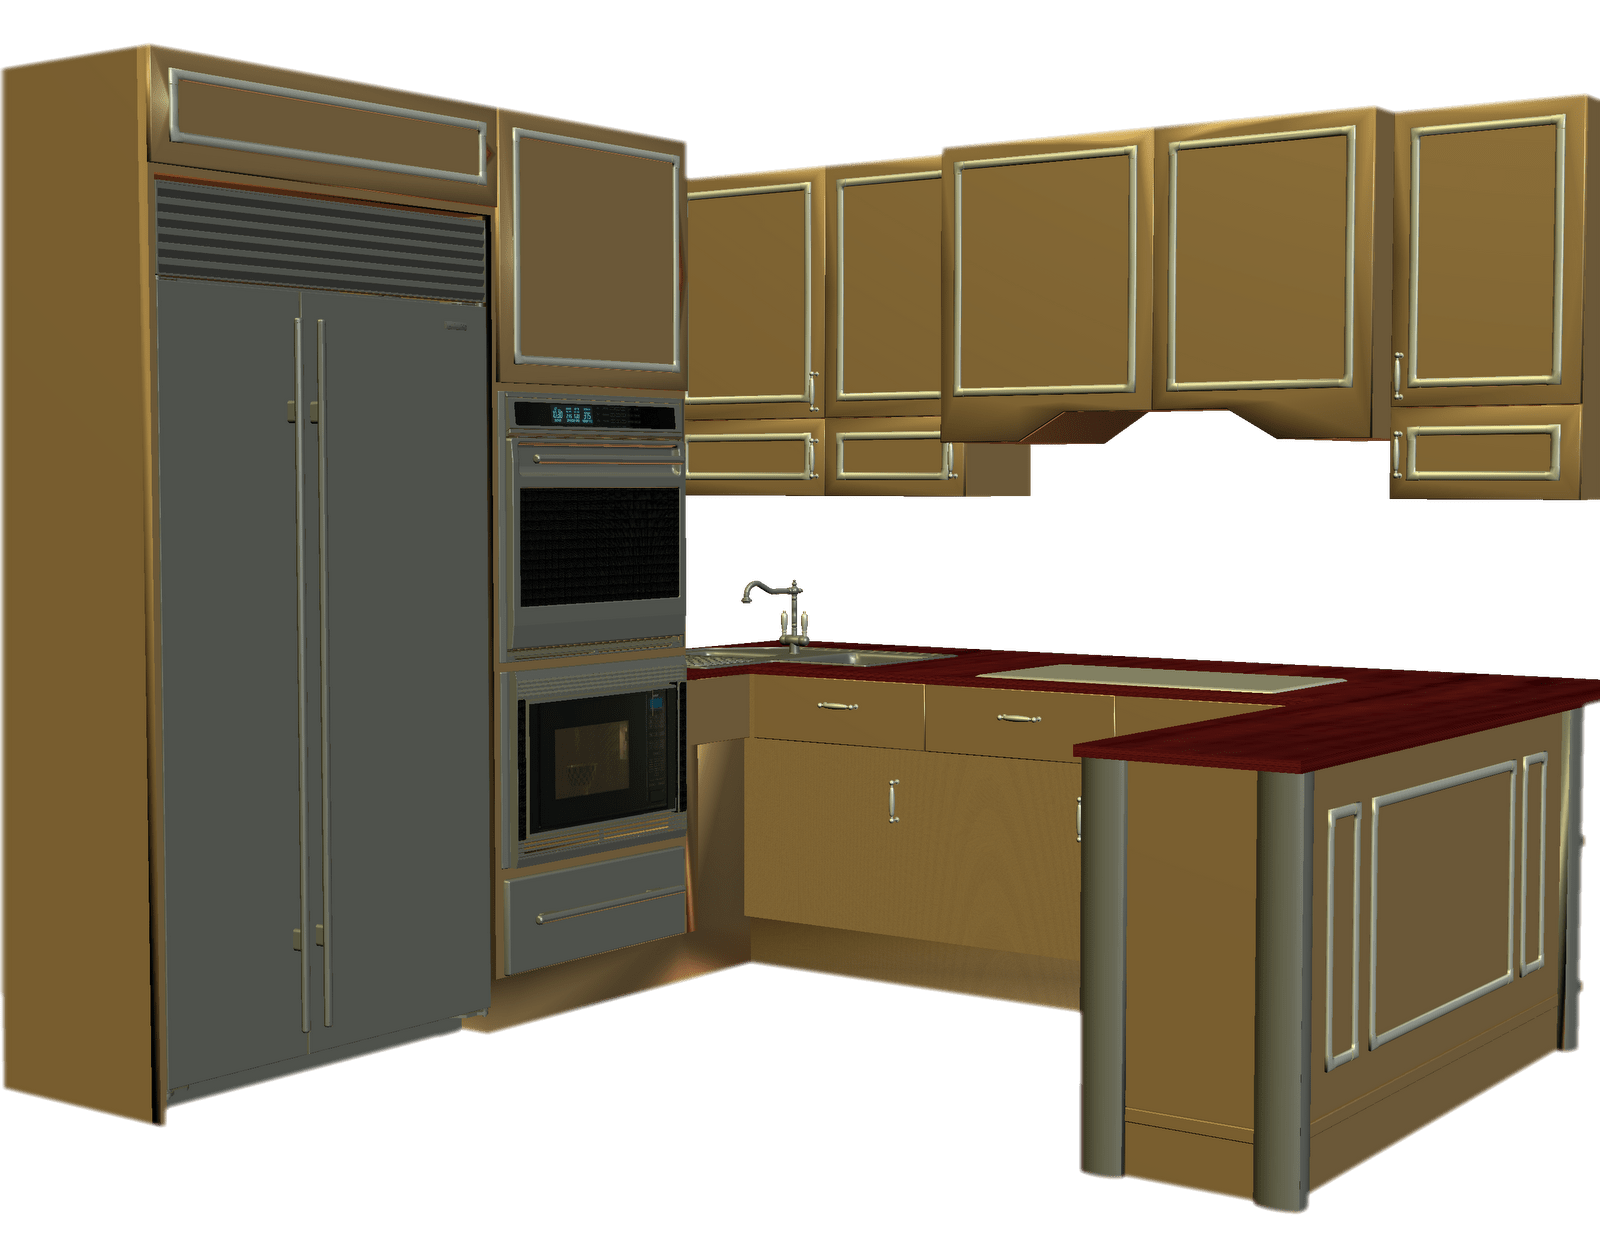 clip freeuse download Counter cabinets animation leeann. Kitchen cabinet clipart